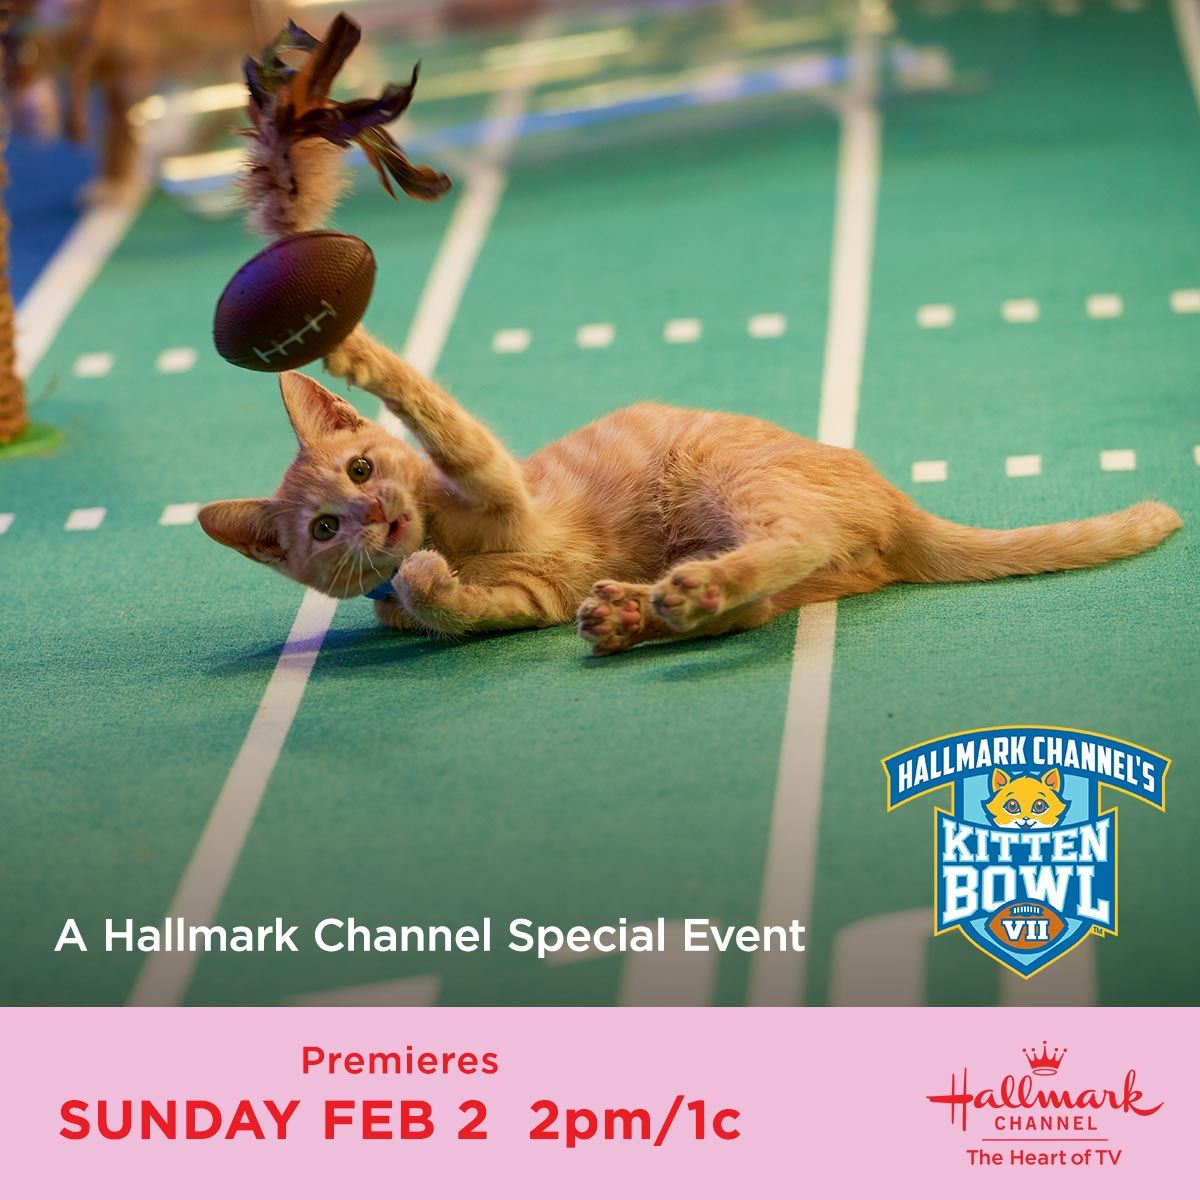 Will This Be The Winning Touchdown For The Little Long Tails Find Out During Kittenbowl Sunday February 2nd 2pm 1c Only In 2020 Kitten Bowls Kittens Cutest Kitten